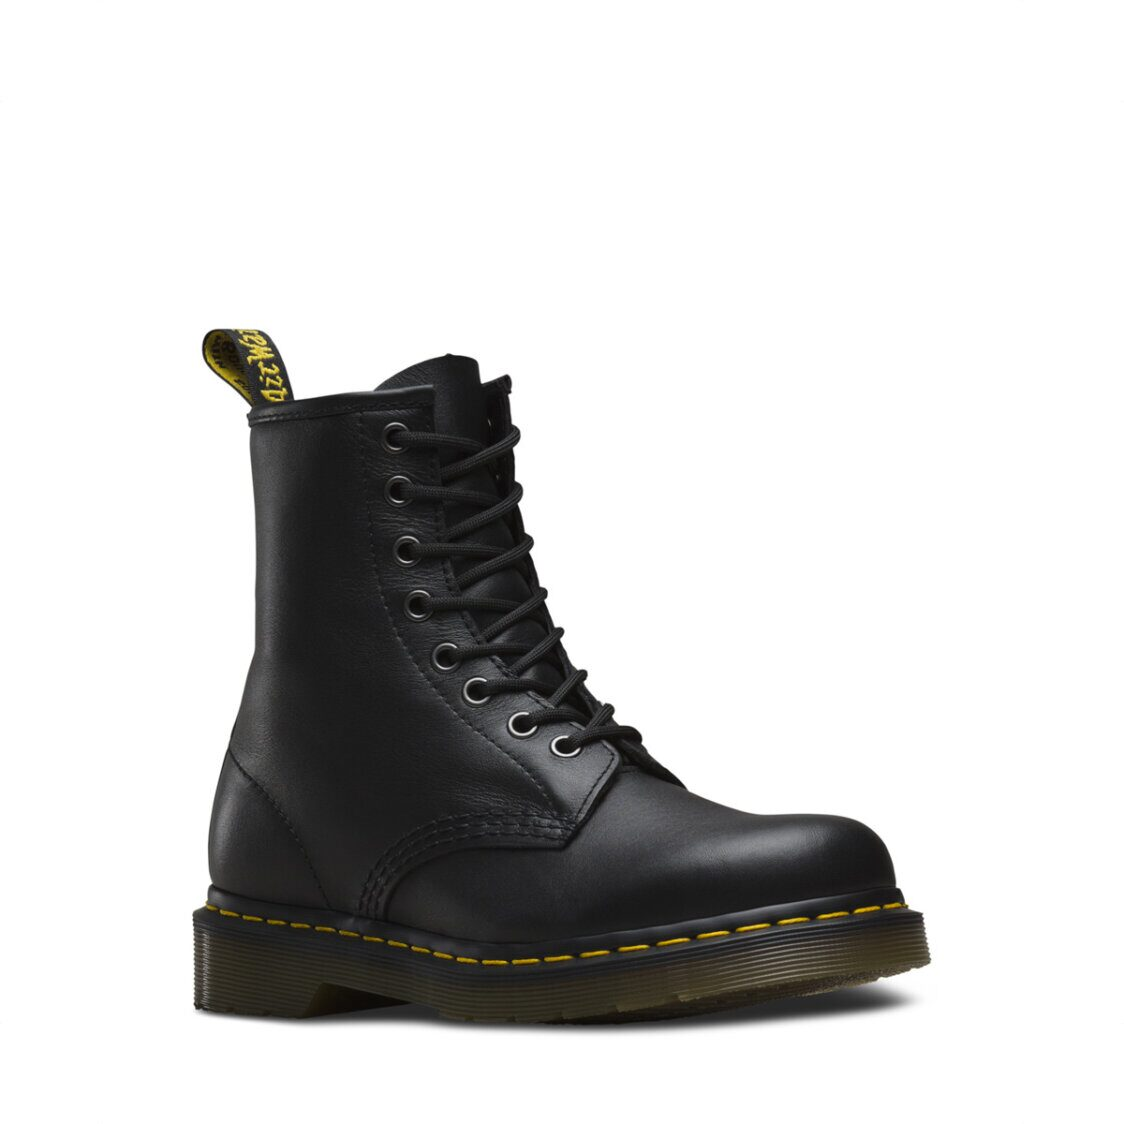 Dr Marten 1460 Nappa Leather 8 Eyelet Lace Up Boots